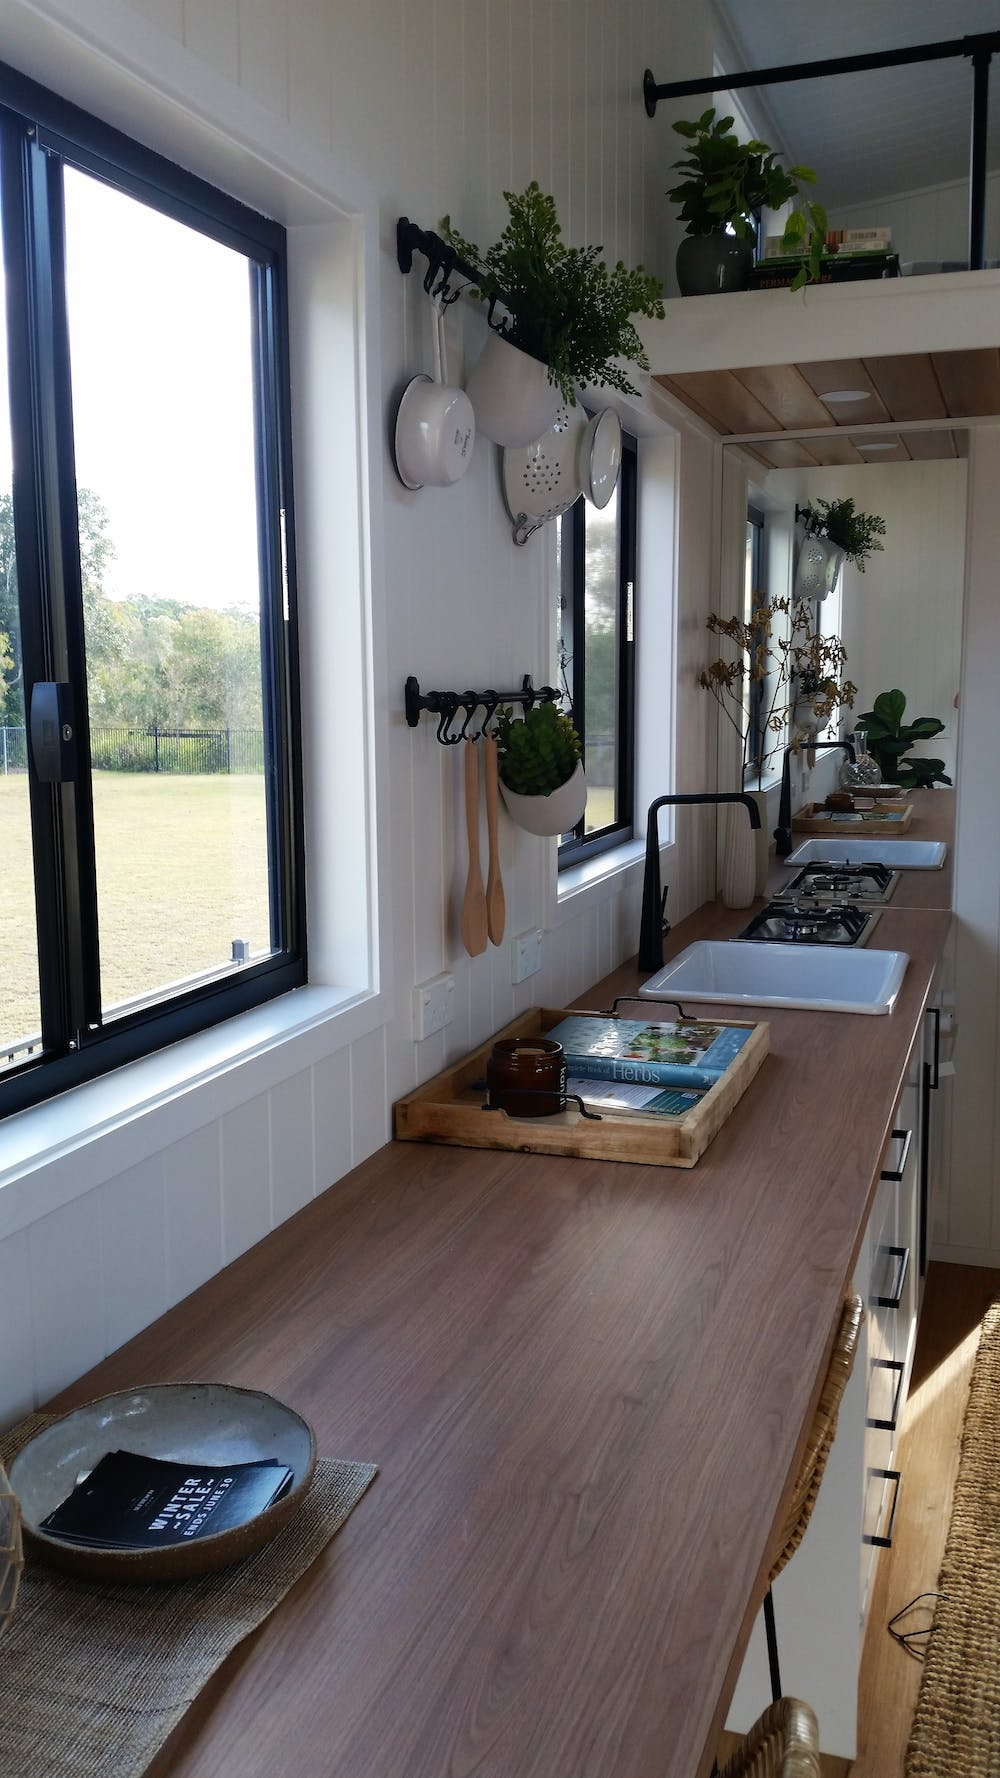 Life in a tiny house: what's it like and how can it be made